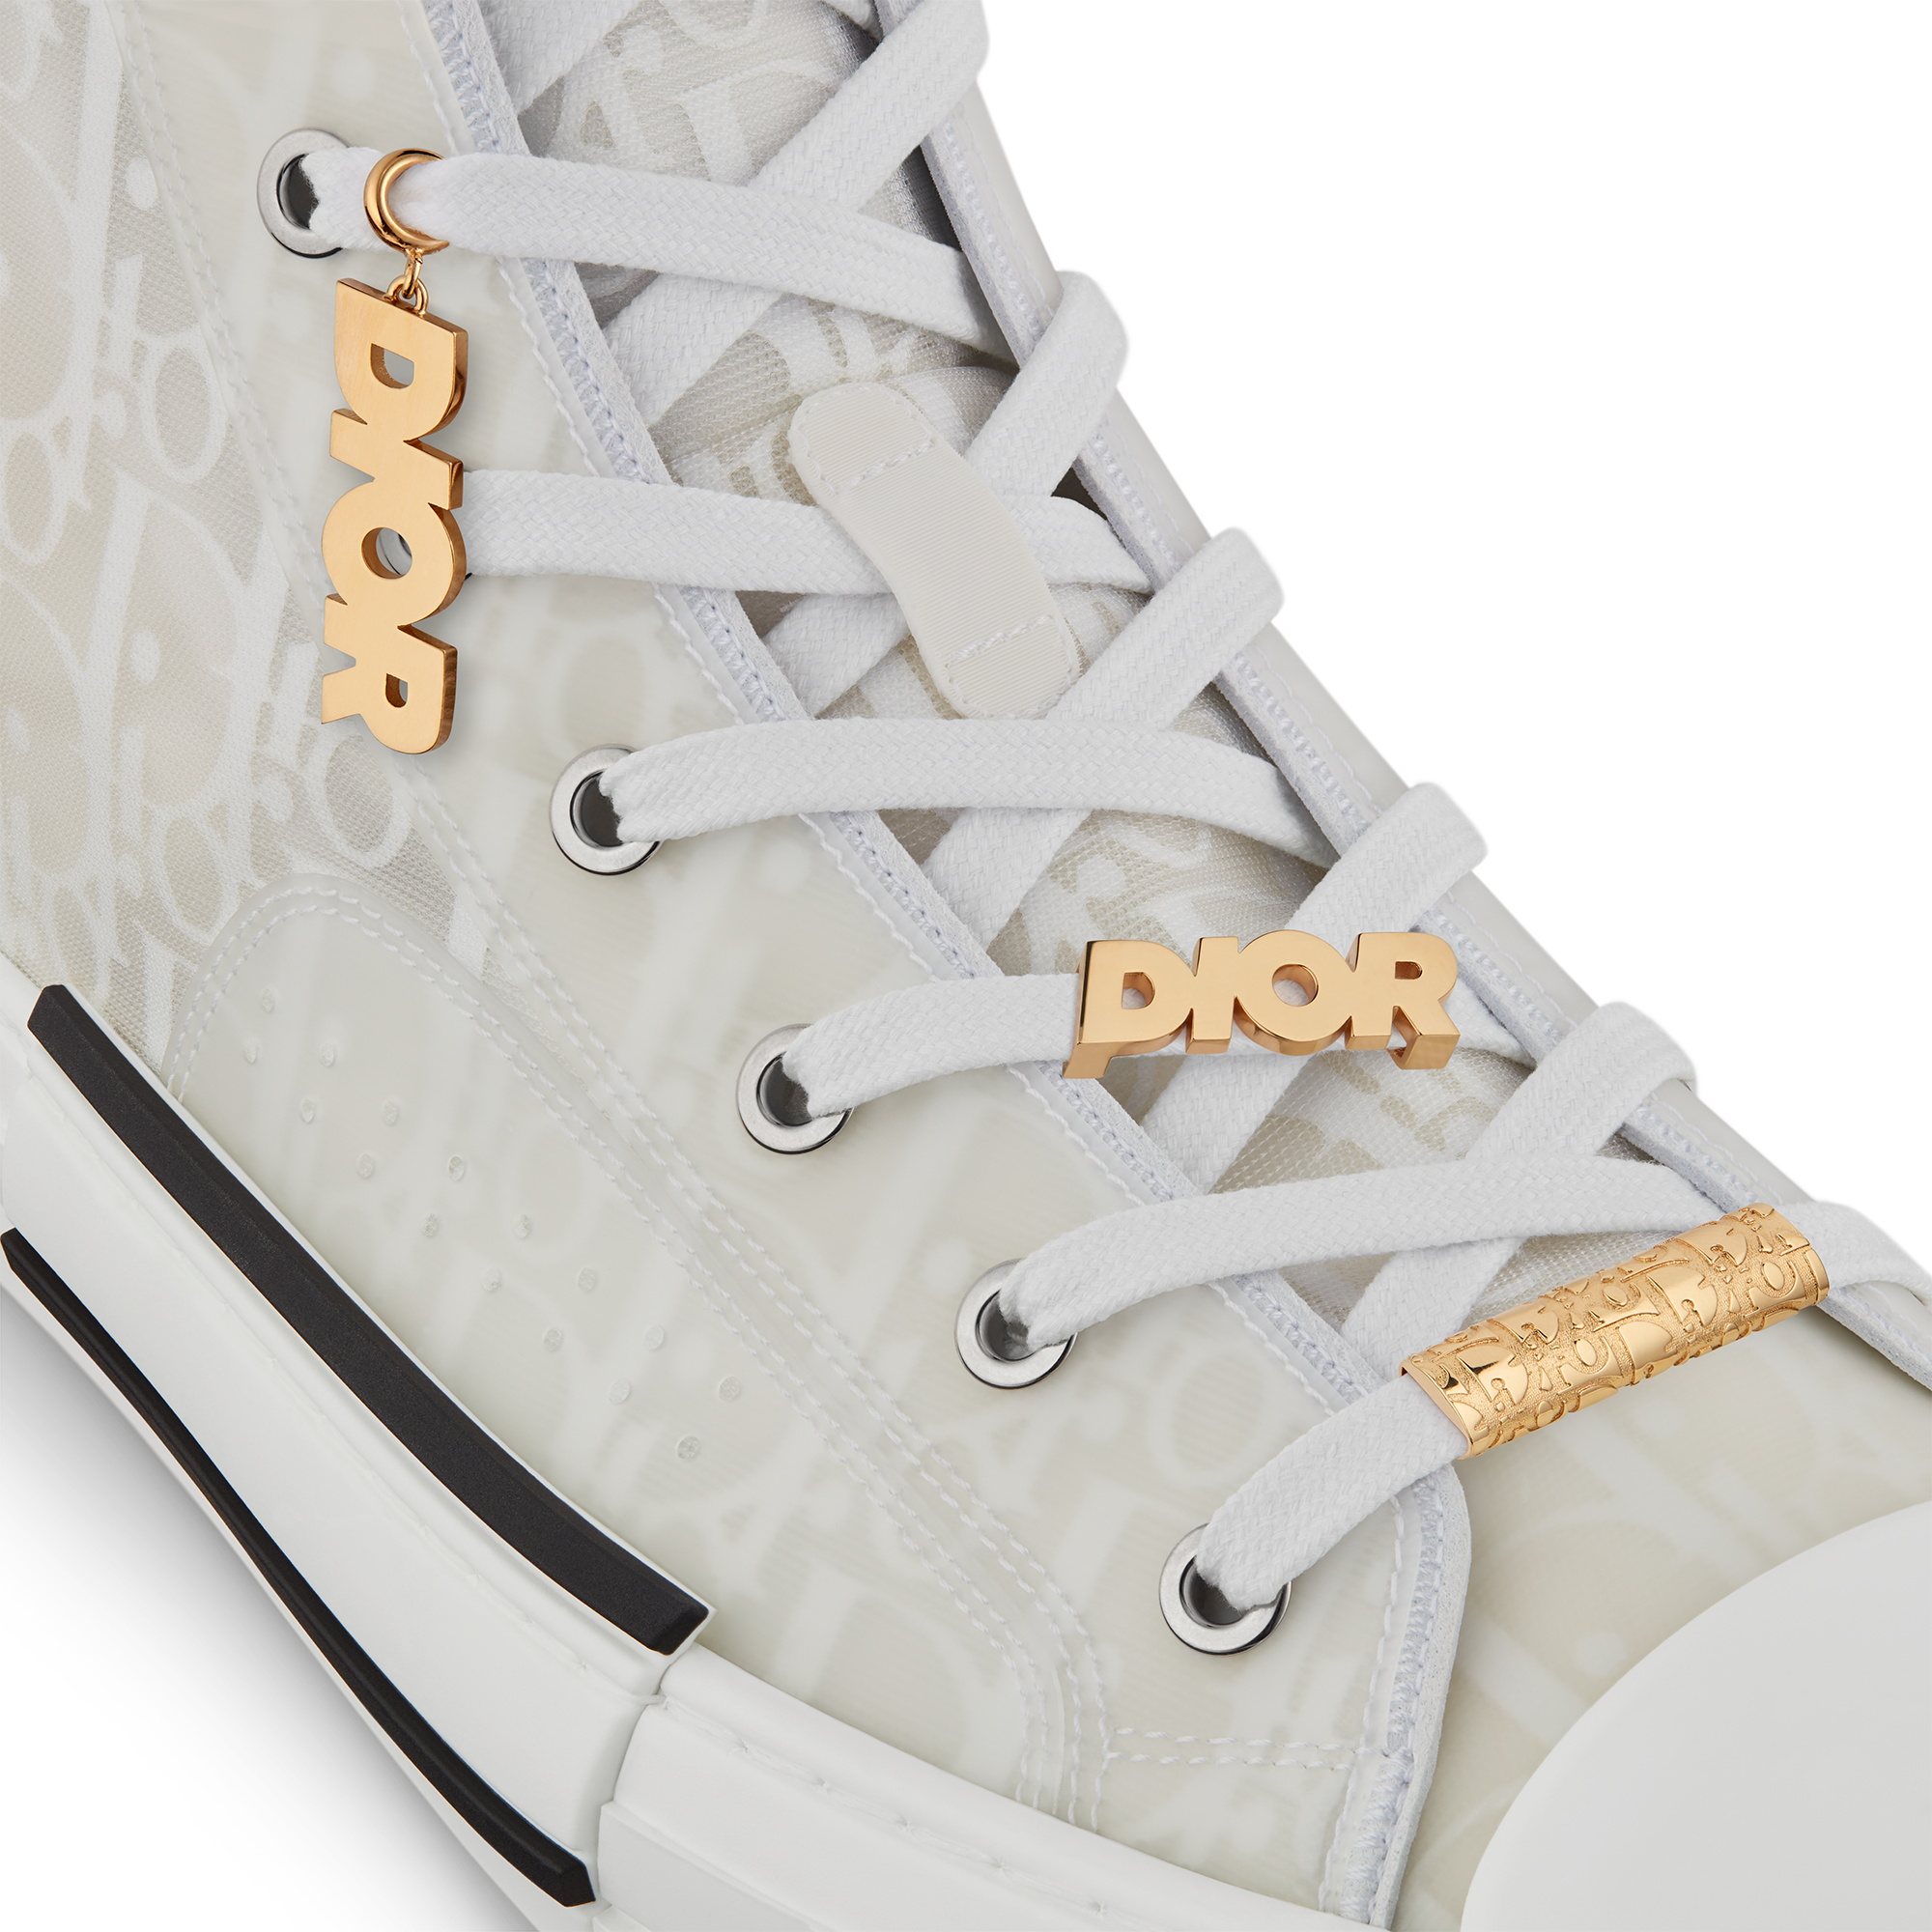 'DIOR' Sneaker Charm Worn view Open gallery